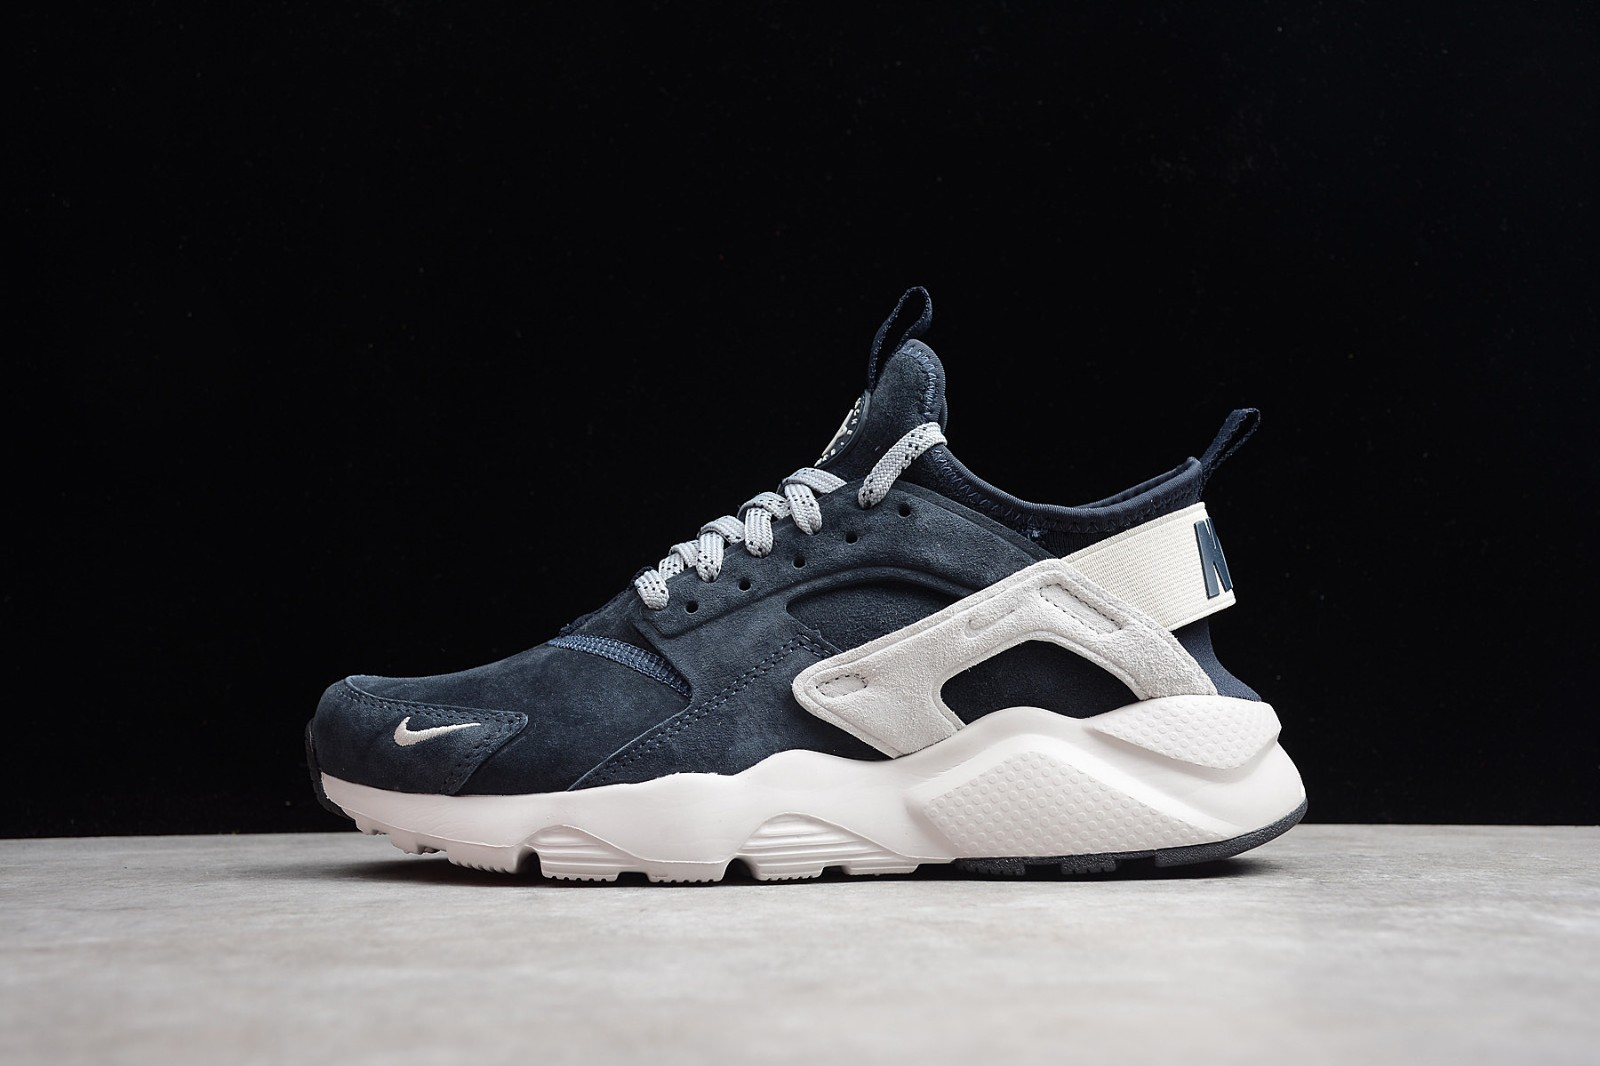 219b4fb2c9d6 Nike Air Huarache Run Ultra Midnight Navy Grey White 829669-402 ...